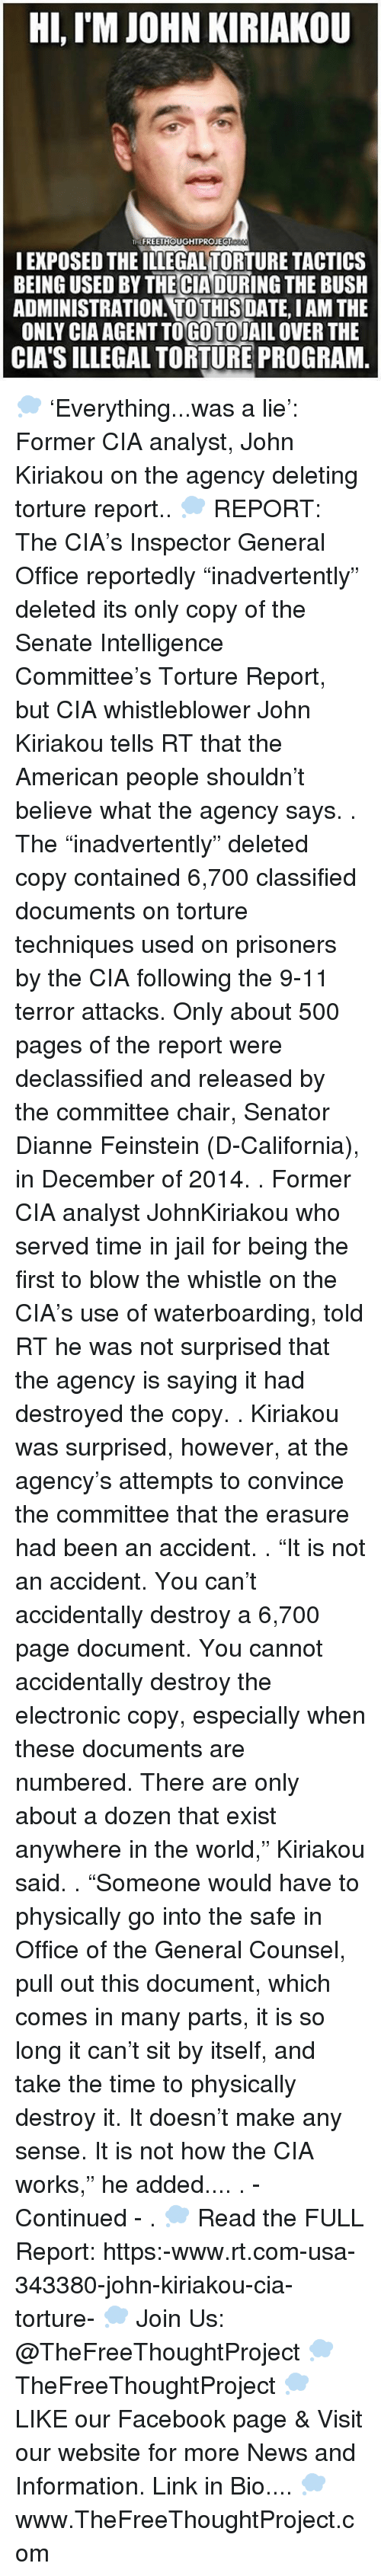 "Memes, Blow the Whistle, and Dianne Feinstein: Hi, IM JOHN KIRIAKOU  FREETHOUGHTPROJECT  I EXPOSED THEILLEGALTORTURE TACTICS  BEING USED BYTHECIADURING THE BUSH  ADMINISTRATION TO THIS  DATE IAM THE  ONLY CIAAGENTTOGOTOJAIL OVER THE  CIA's ILLEGAL TORTURE PROGRAM 💭 'Everything...was a lie': Former CIA analyst, John Kiriakou on the agency deleting torture report.. 💭 REPORT: The CIA's Inspector General Office reportedly ""inadvertently"" deleted its only copy of the Senate Intelligence Committee's Torture Report, but CIA whistleblower John Kiriakou tells RT that the American people shouldn't believe what the agency says. . The ""inadvertently"" deleted copy contained 6,700 classified documents on torture techniques used on prisoners by the CIA following the 9-11 terror attacks. Only about 500 pages of the report were declassified and released by the committee chair, Senator Dianne Feinstein (D-California), in December of 2014. . Former CIA analyst JohnKiriakou who served time in jail for being the first to blow the whistle on the CIA's use of waterboarding, told RT he was not surprised that the agency is saying it had destroyed the copy. . Kiriakou was surprised, however, at the agency's attempts to convince the committee that the erasure had been an accident. . ""It is not an accident. You can't accidentally destroy a 6,700 page document. You cannot accidentally destroy the electronic copy, especially when these documents are numbered. There are only about a dozen that exist anywhere in the world,"" Kiriakou said. . ""Someone would have to physically go into the safe in Office of the General Counsel, pull out this document, which comes in many parts, it is so long it can't sit by itself, and take the time to physically destroy it. It doesn't make any sense. It is not how the CIA works,"" he added.... . - Continued - . 💭 Read the FULL Report: https:-www.rt.com-usa-343380-john-kiriakou-cia-torture- 💭 Join Us: @TheFreeThoughtProject 💭 TheFreeThoughtProject 💭 LIKE our Facebook page & Visit our website for more News and Information. Link in Bio.... 💭 www.TheFreeThoughtProject.com"